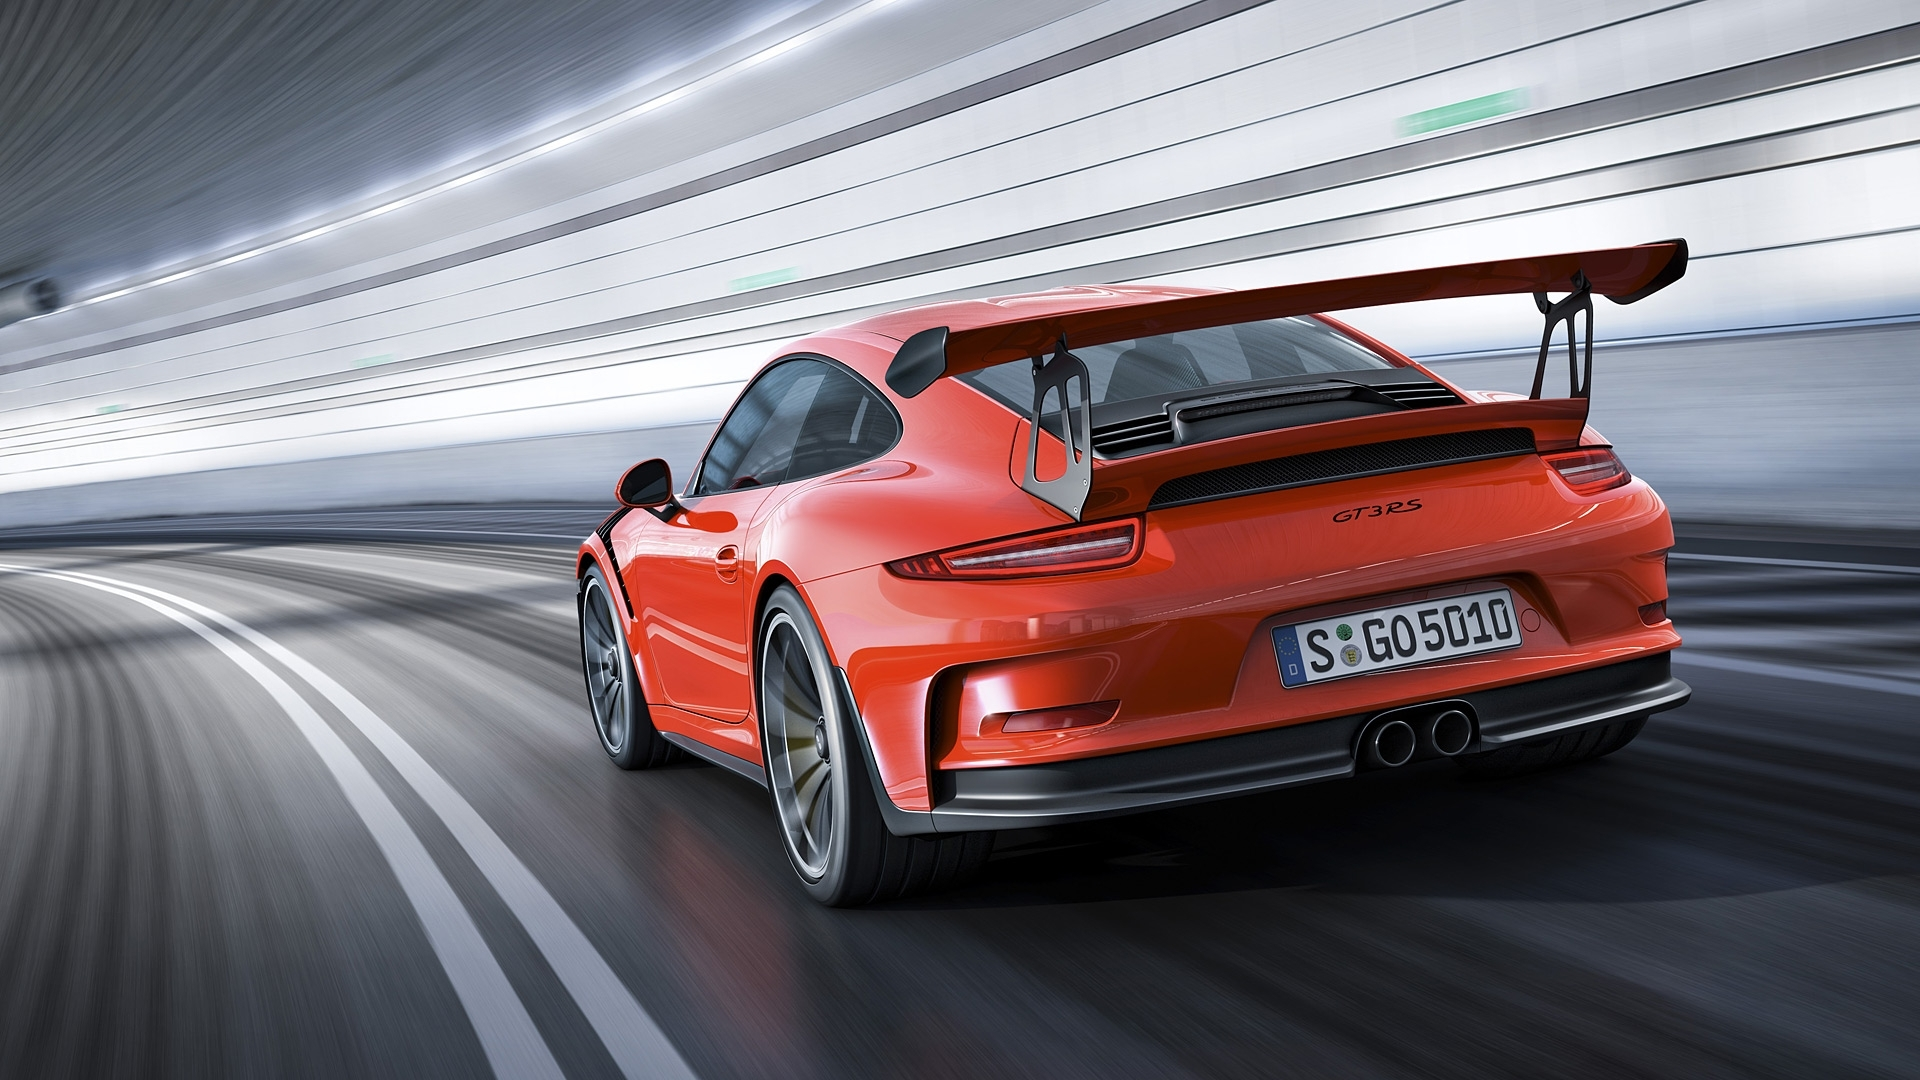 2016 porsche 911 gt3 rs wallpapers & hd images - wsupercars